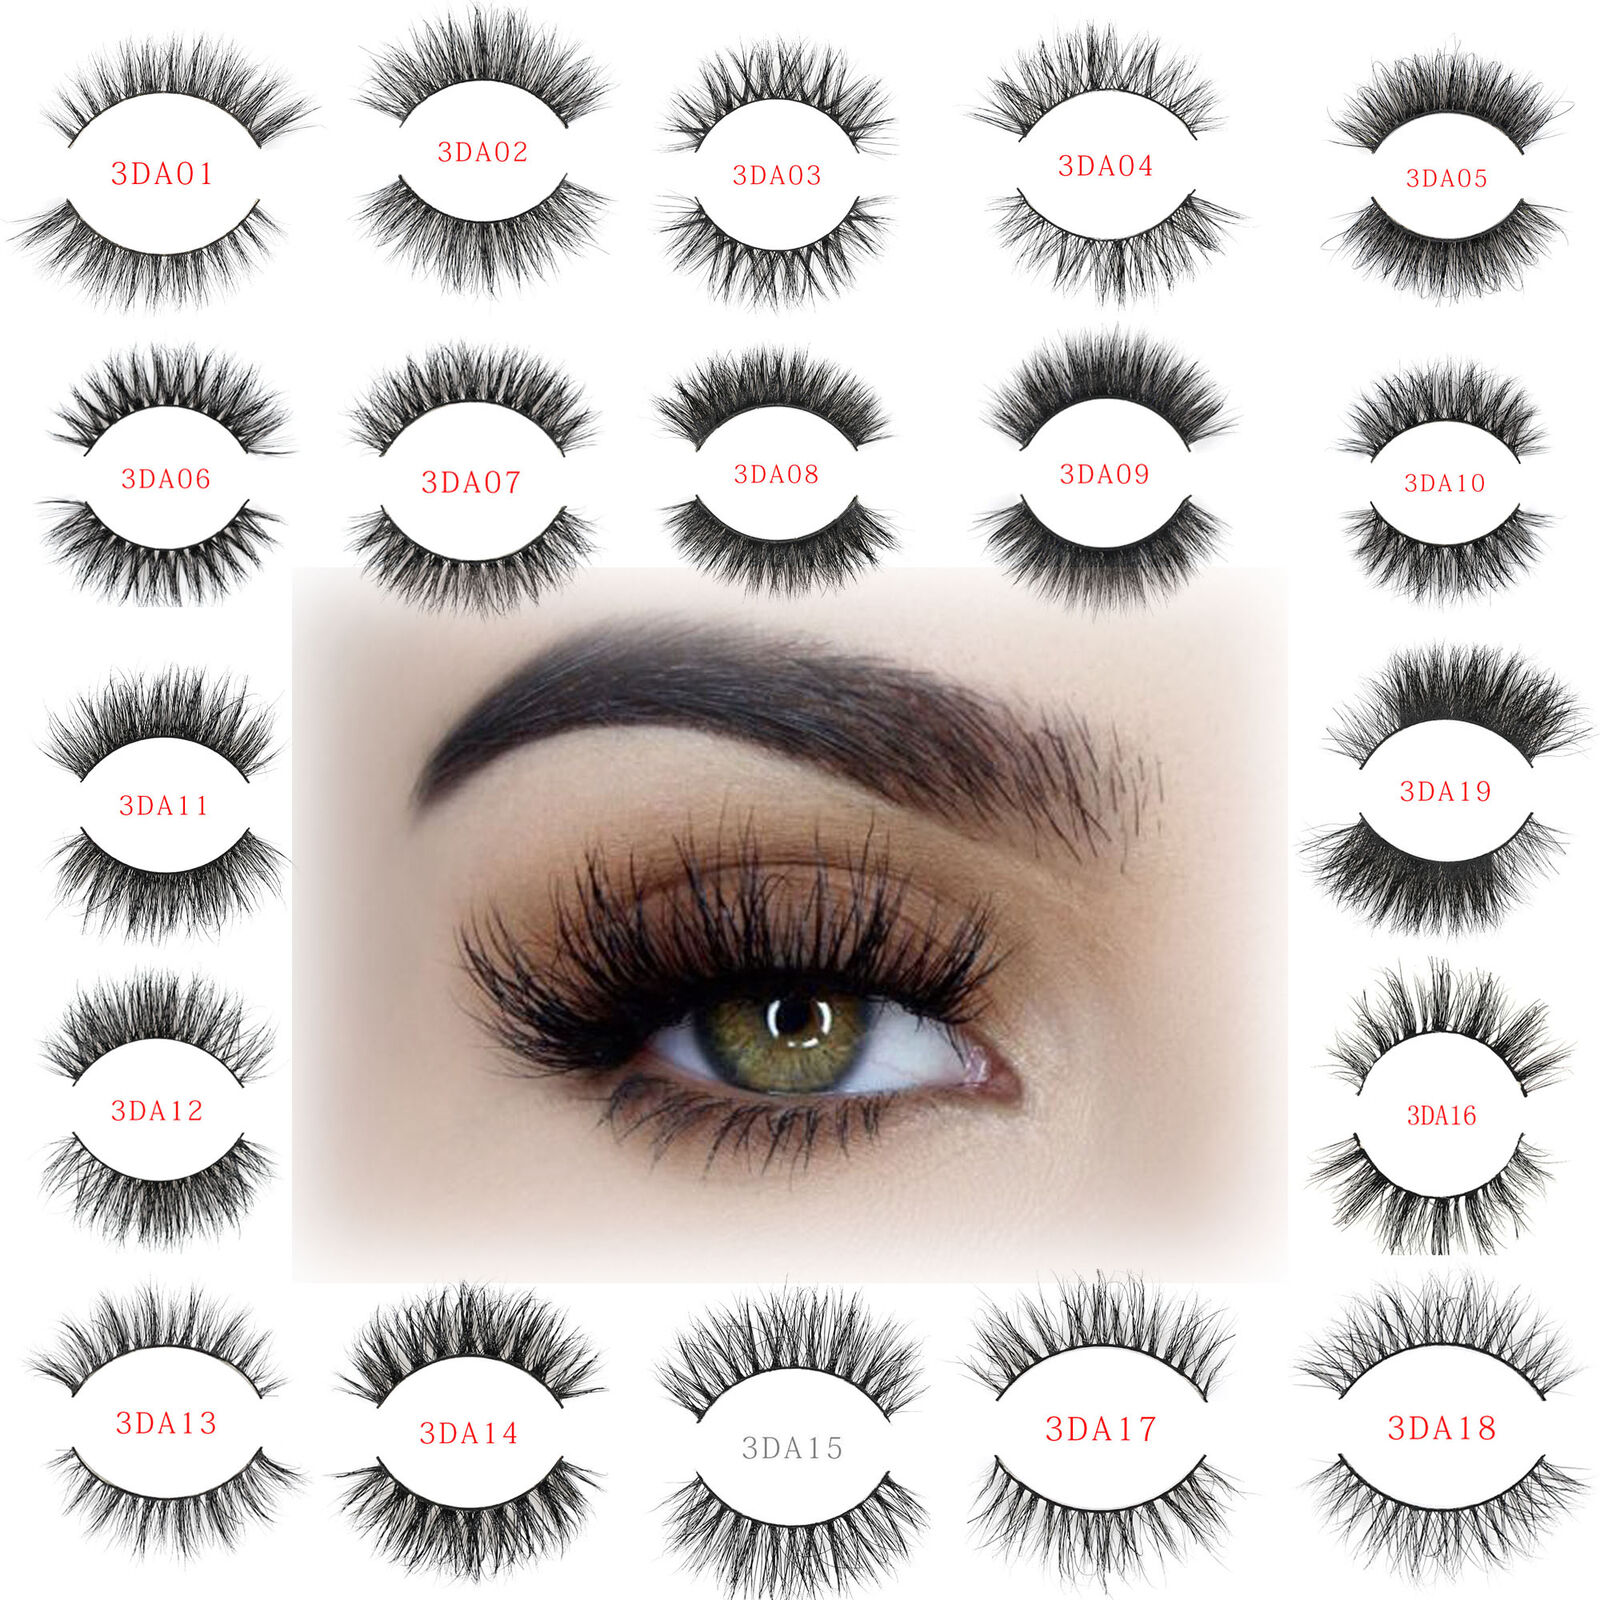 3afaae2921e Details about 3D 100% Mink Eyelashes Natural Thick False Soft Eye Lashes  Makeup Extension Long